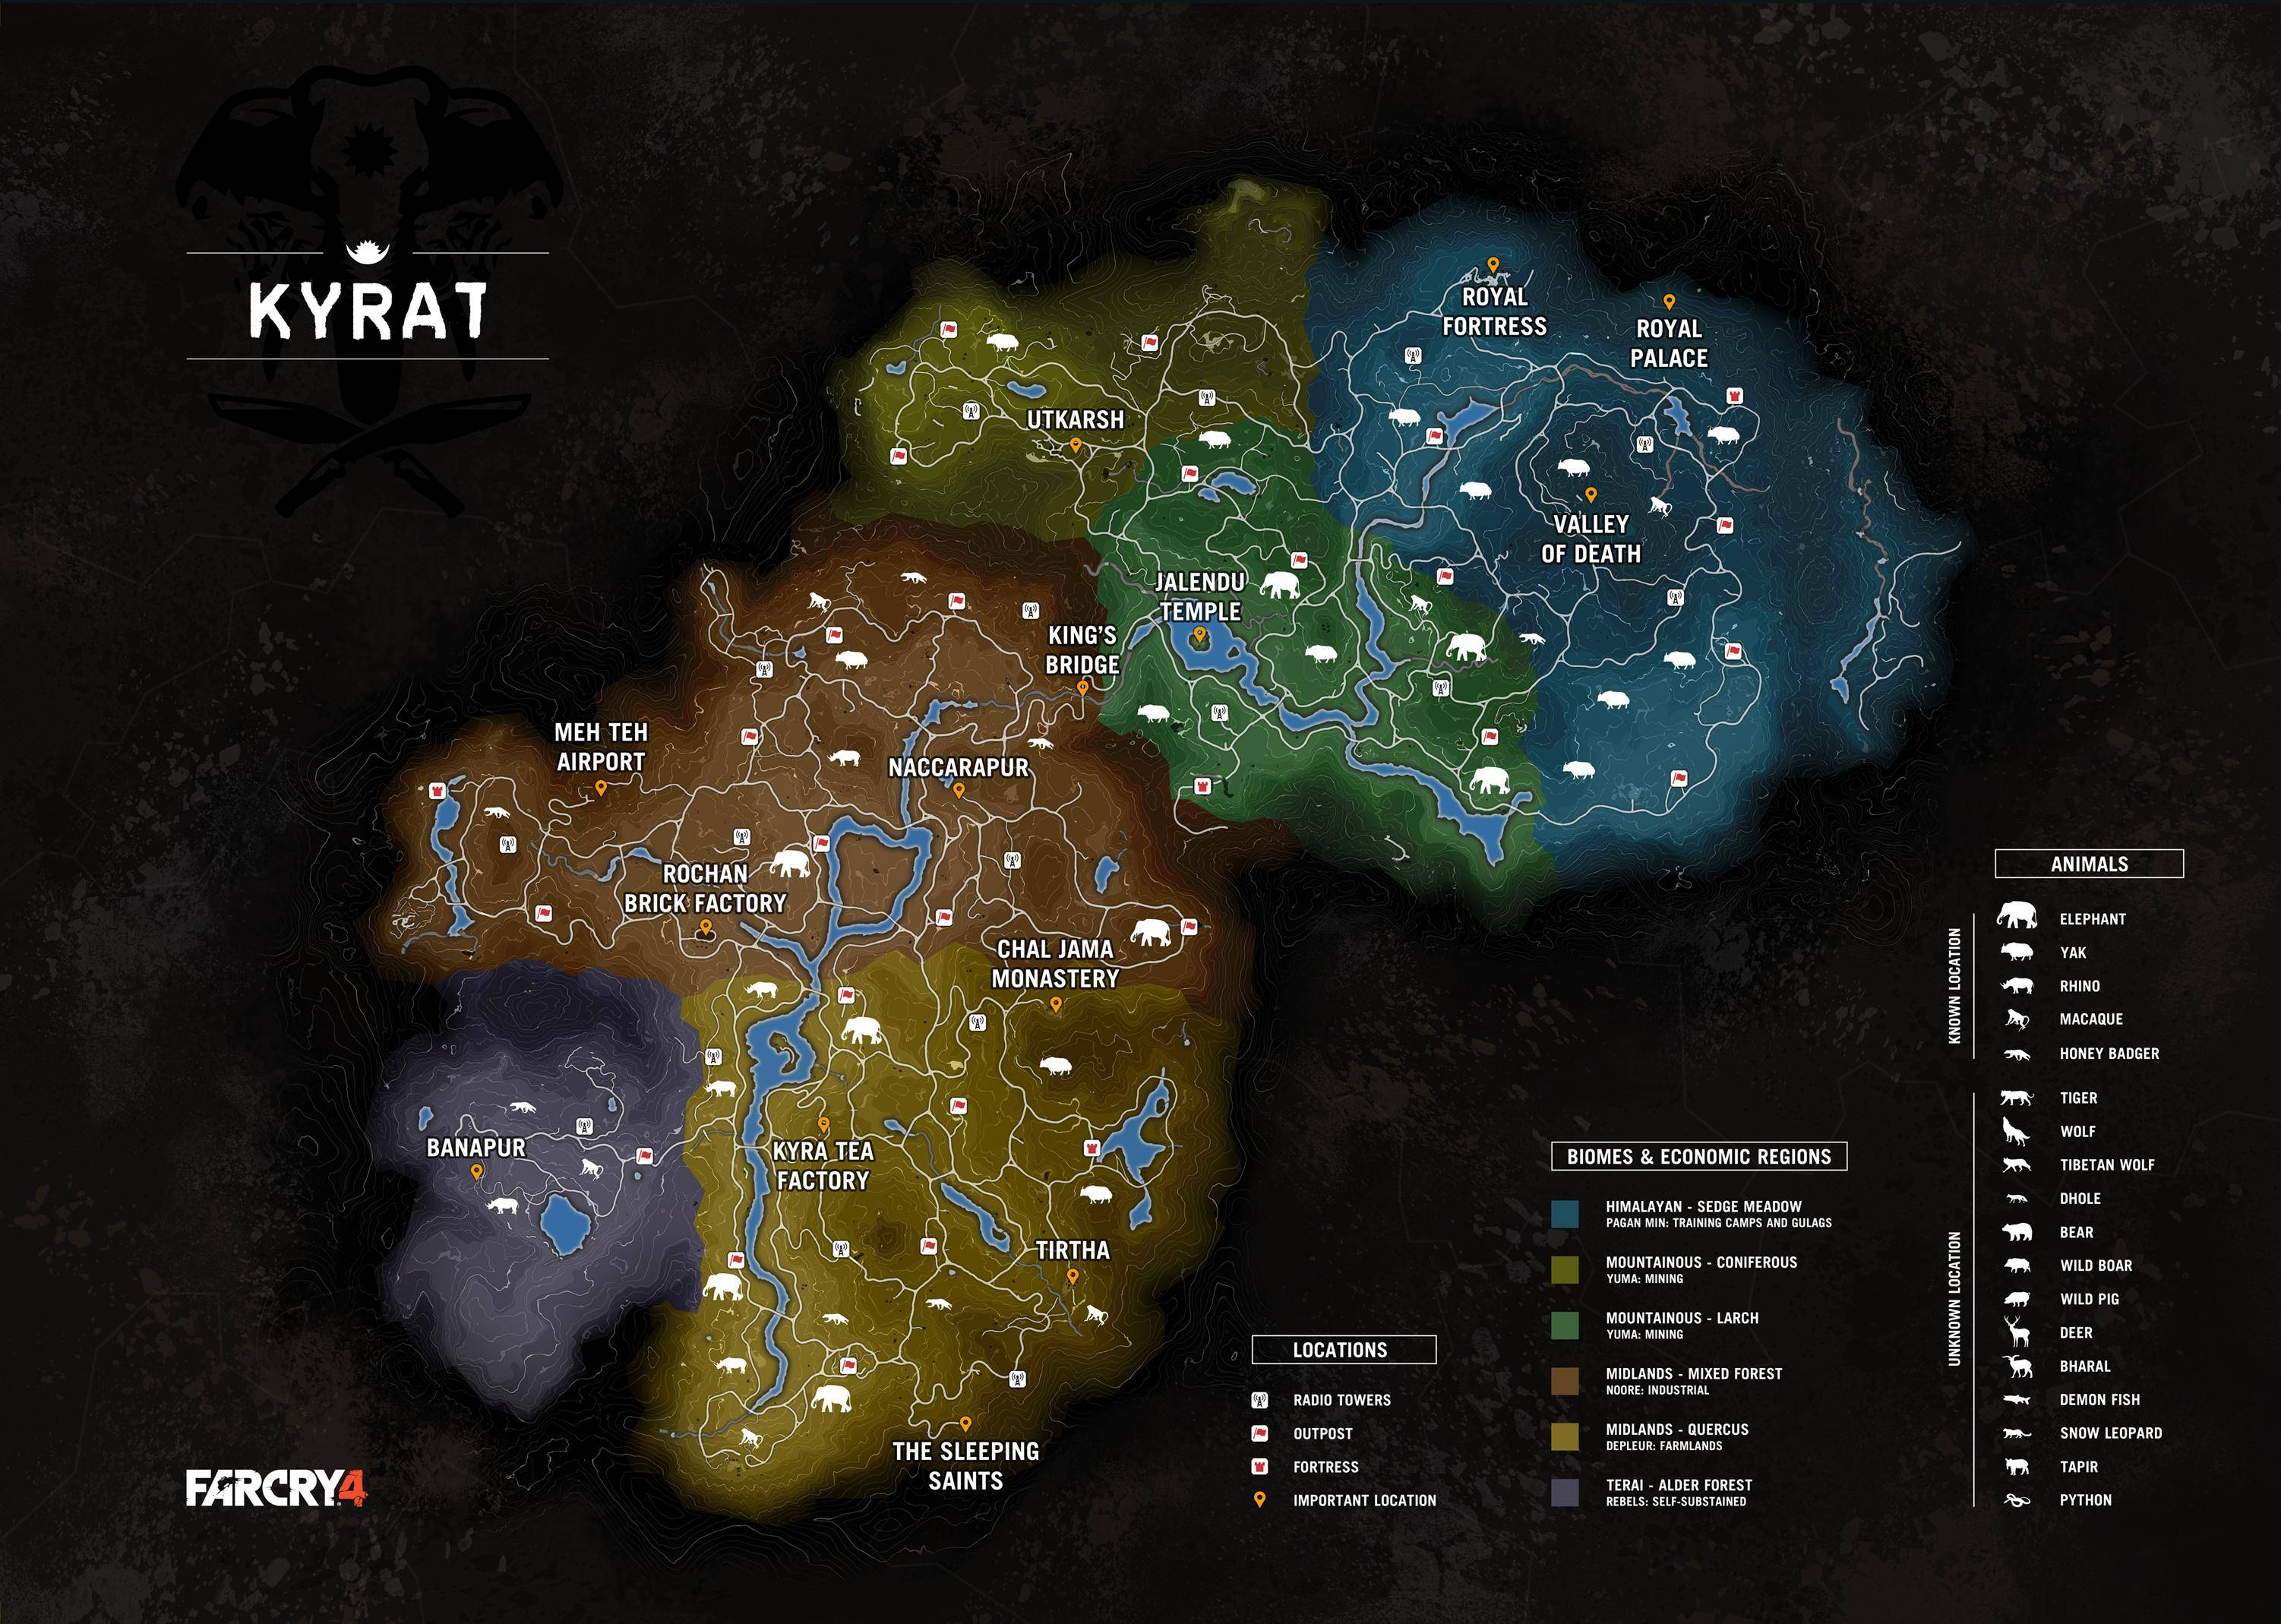 Leaked Image Reveals Far Cry 4 S Map And Details Including A List Of In Game Animal Species